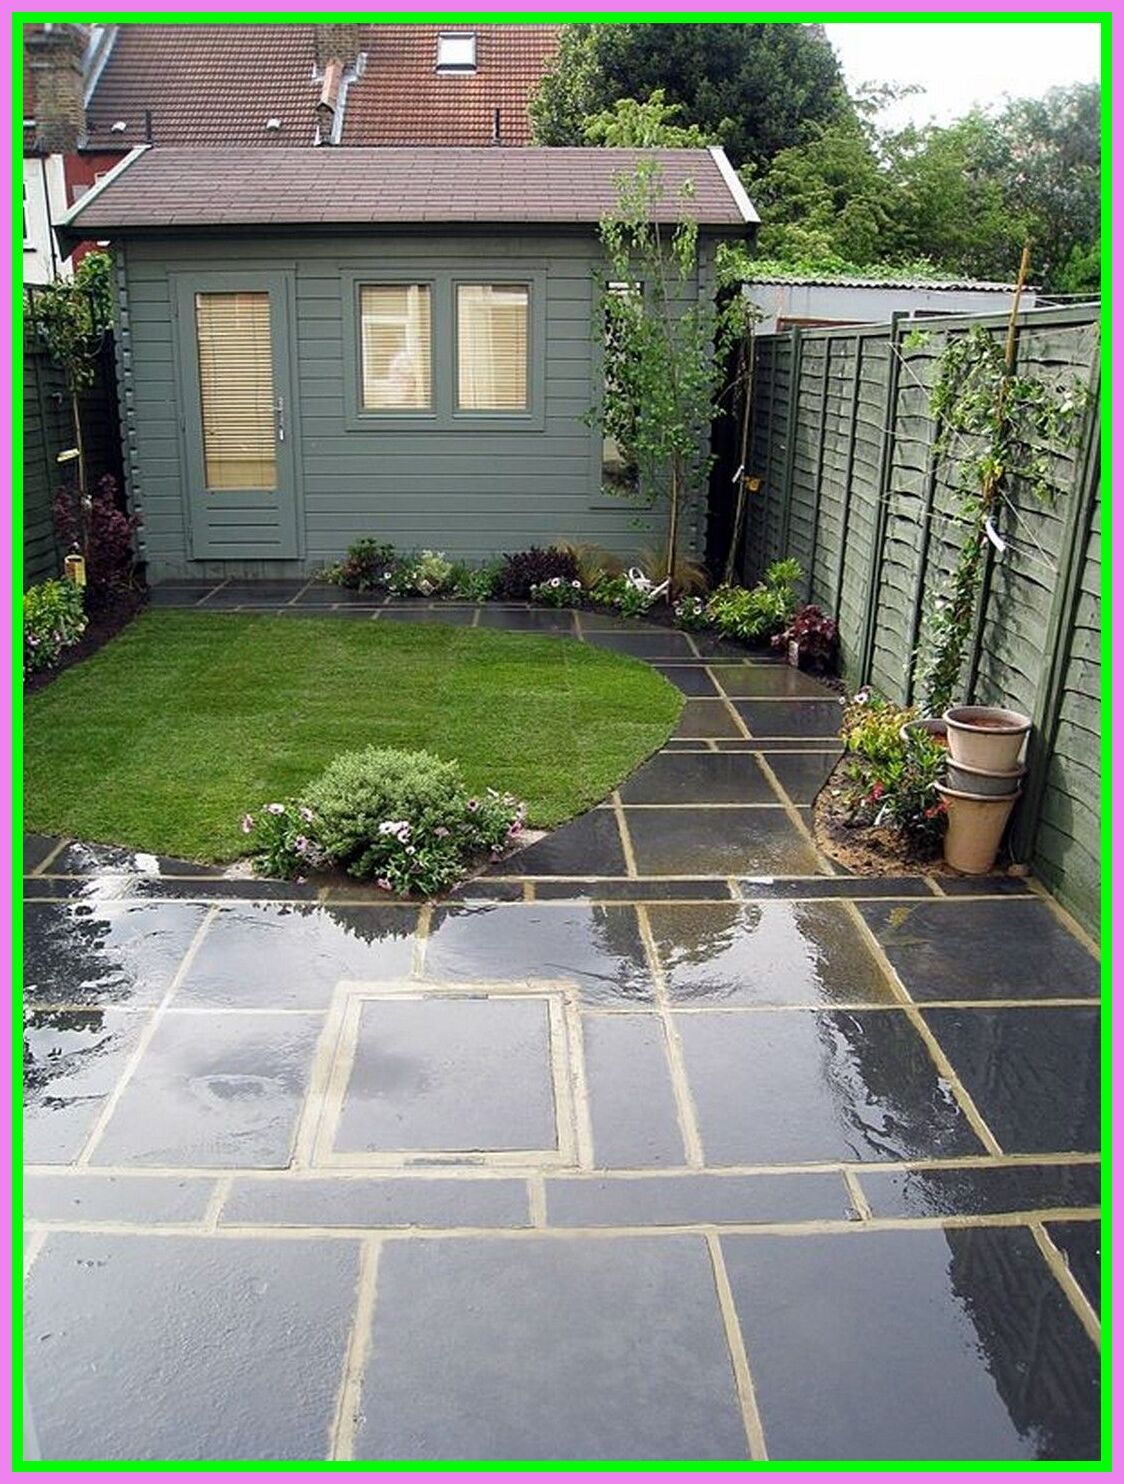 96 reference of slate patio ideas uk in 2020 | Small ...